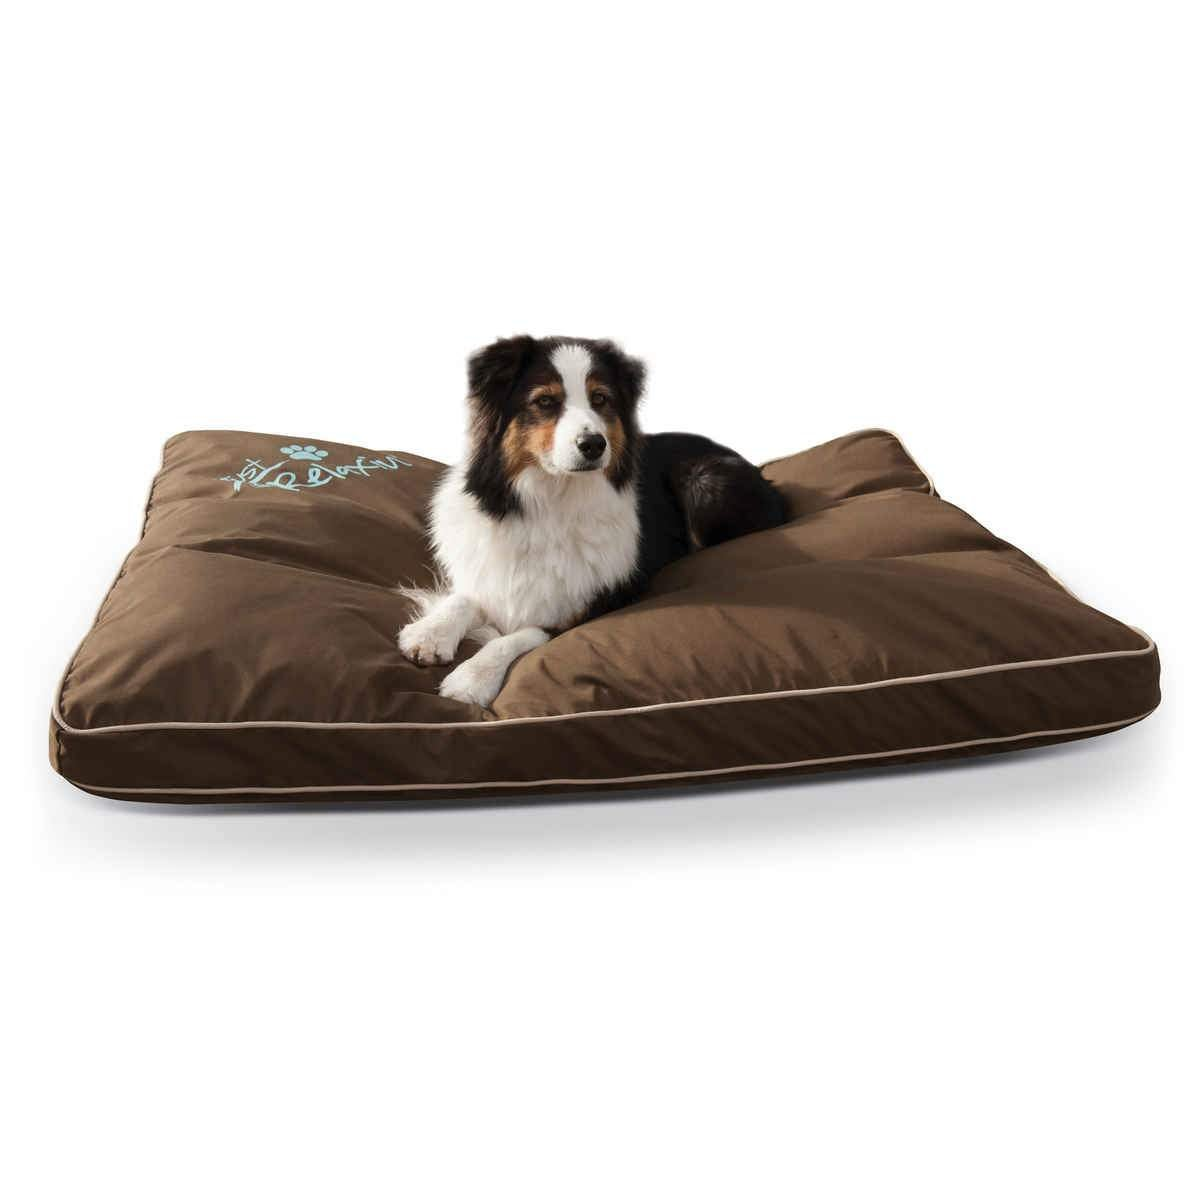 Just Relaxin' Indoor/Outdoor Pet Bed Large Chocolate 36″ x 48″ x 3.5″